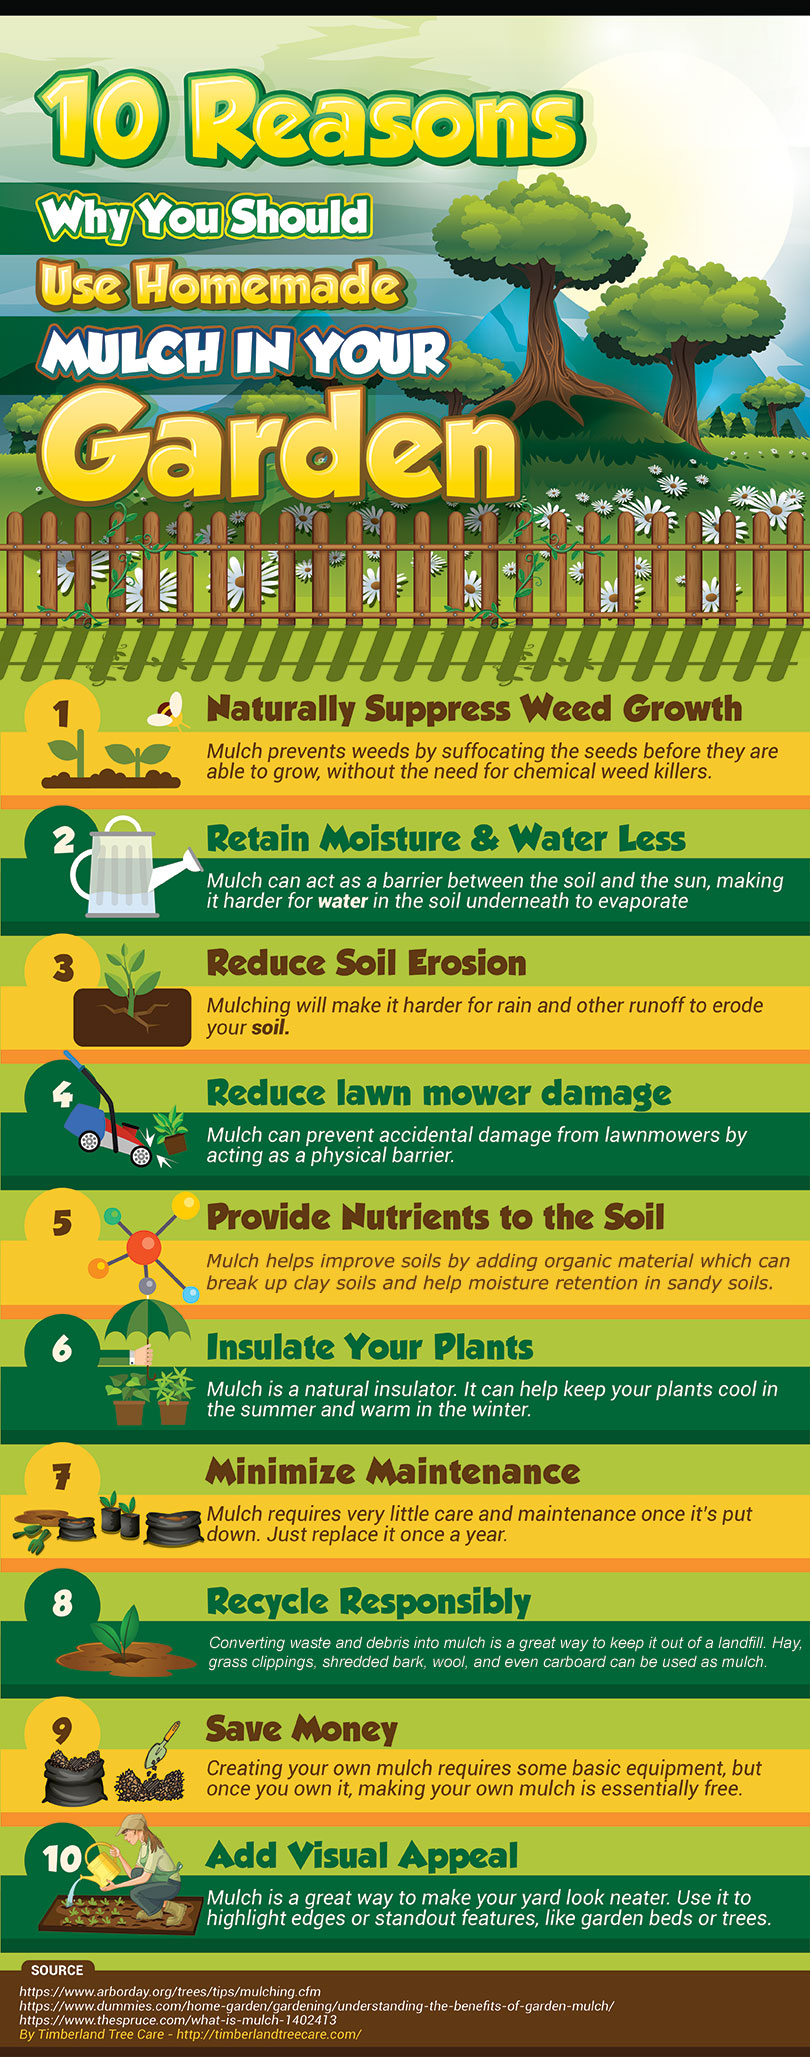 10 reasons why you should use homemade mulch in your garden